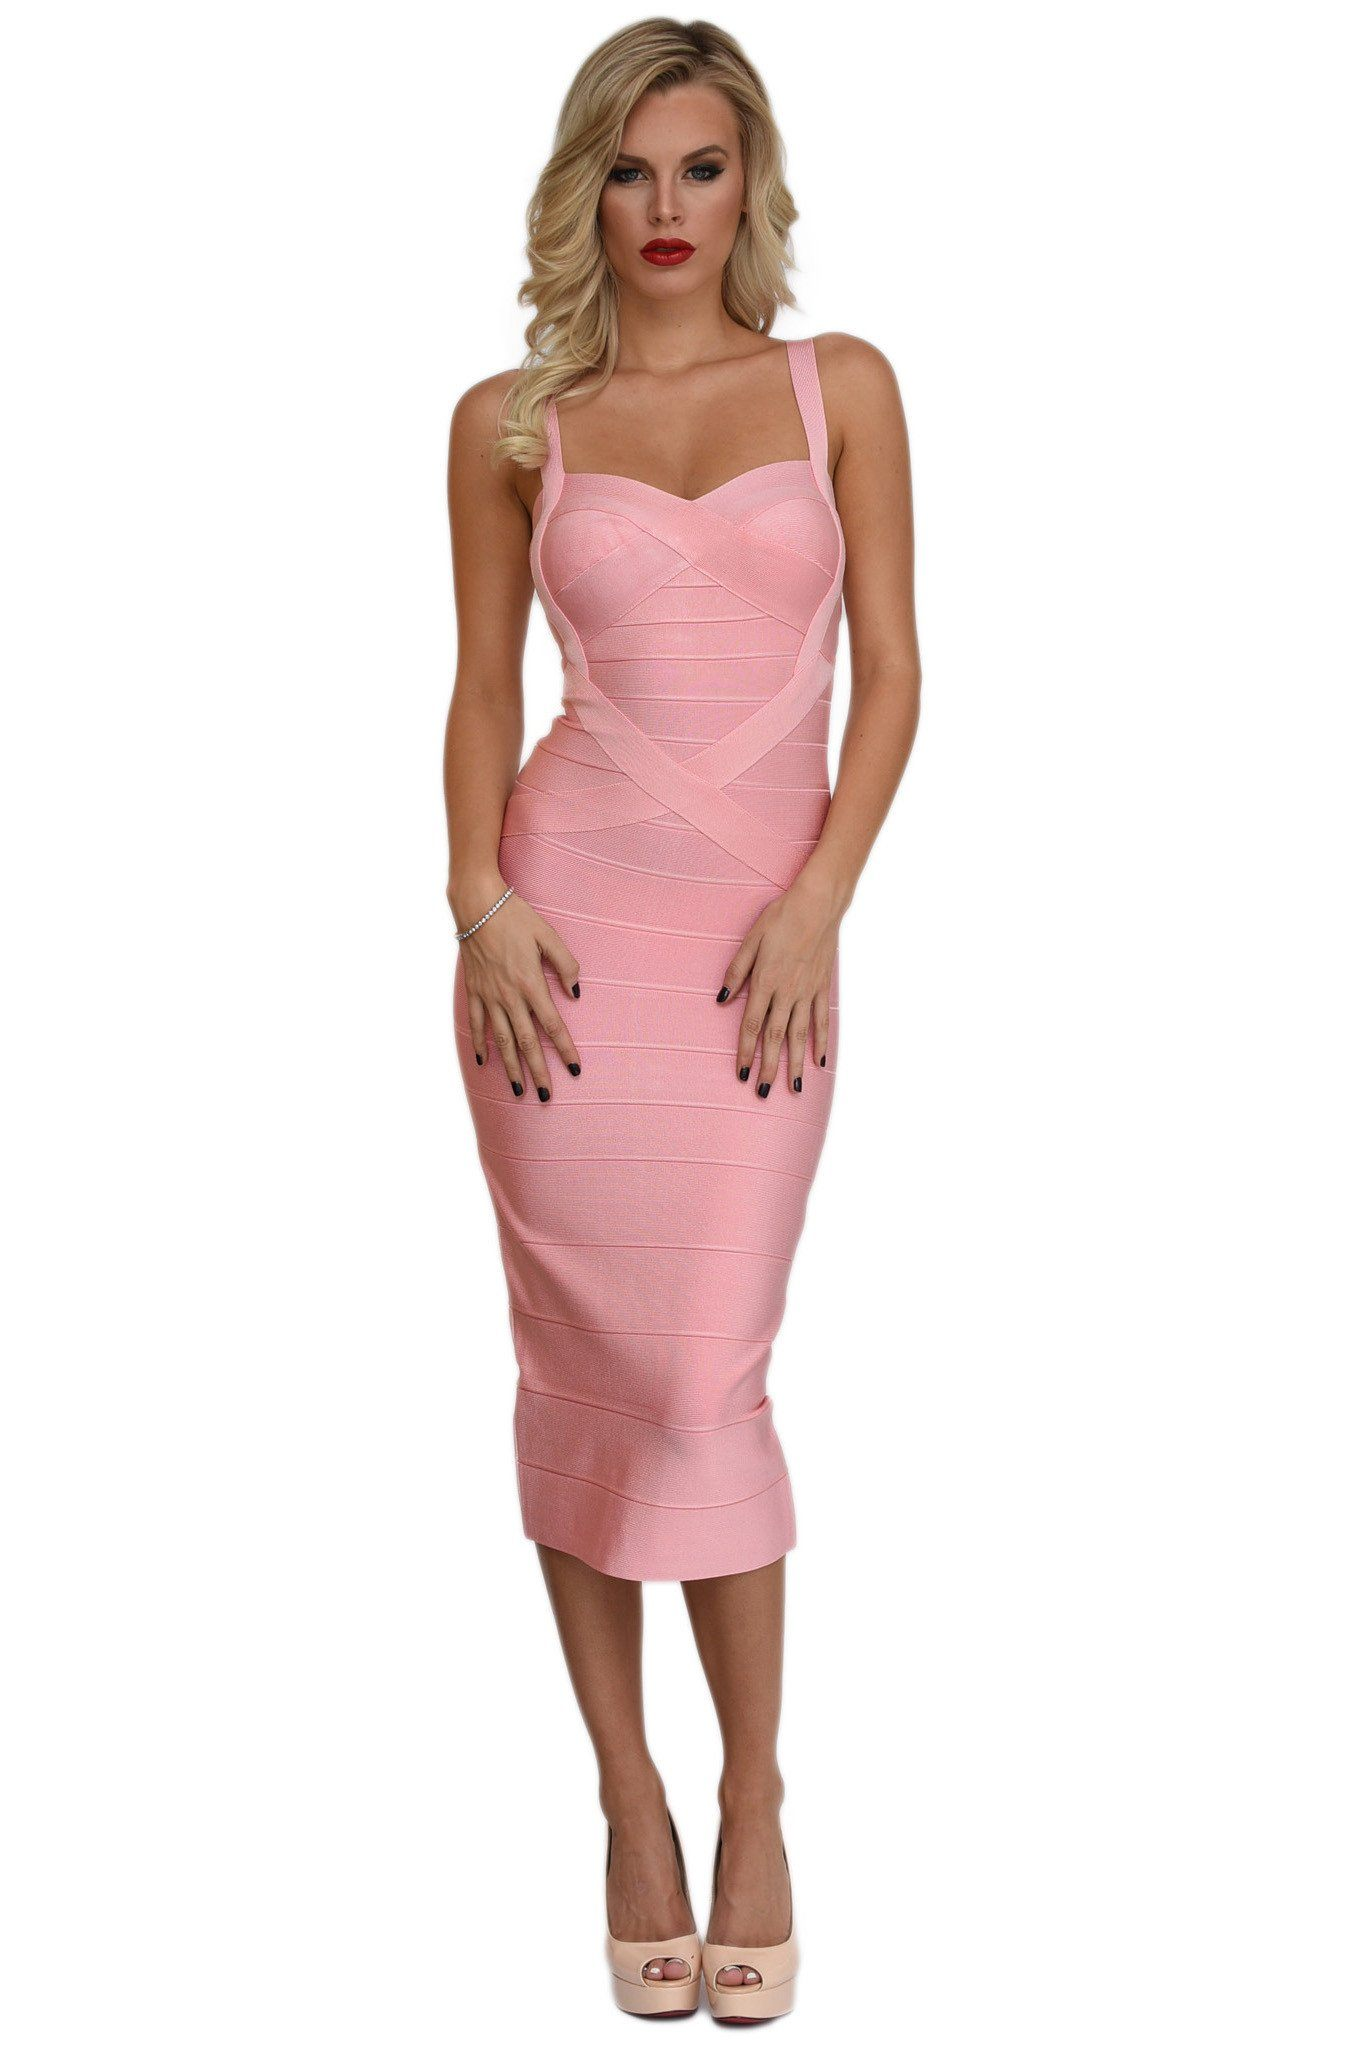 Front of blush pink midi bodycon bandage dress featuring sweetheart neckline and shoulder straps